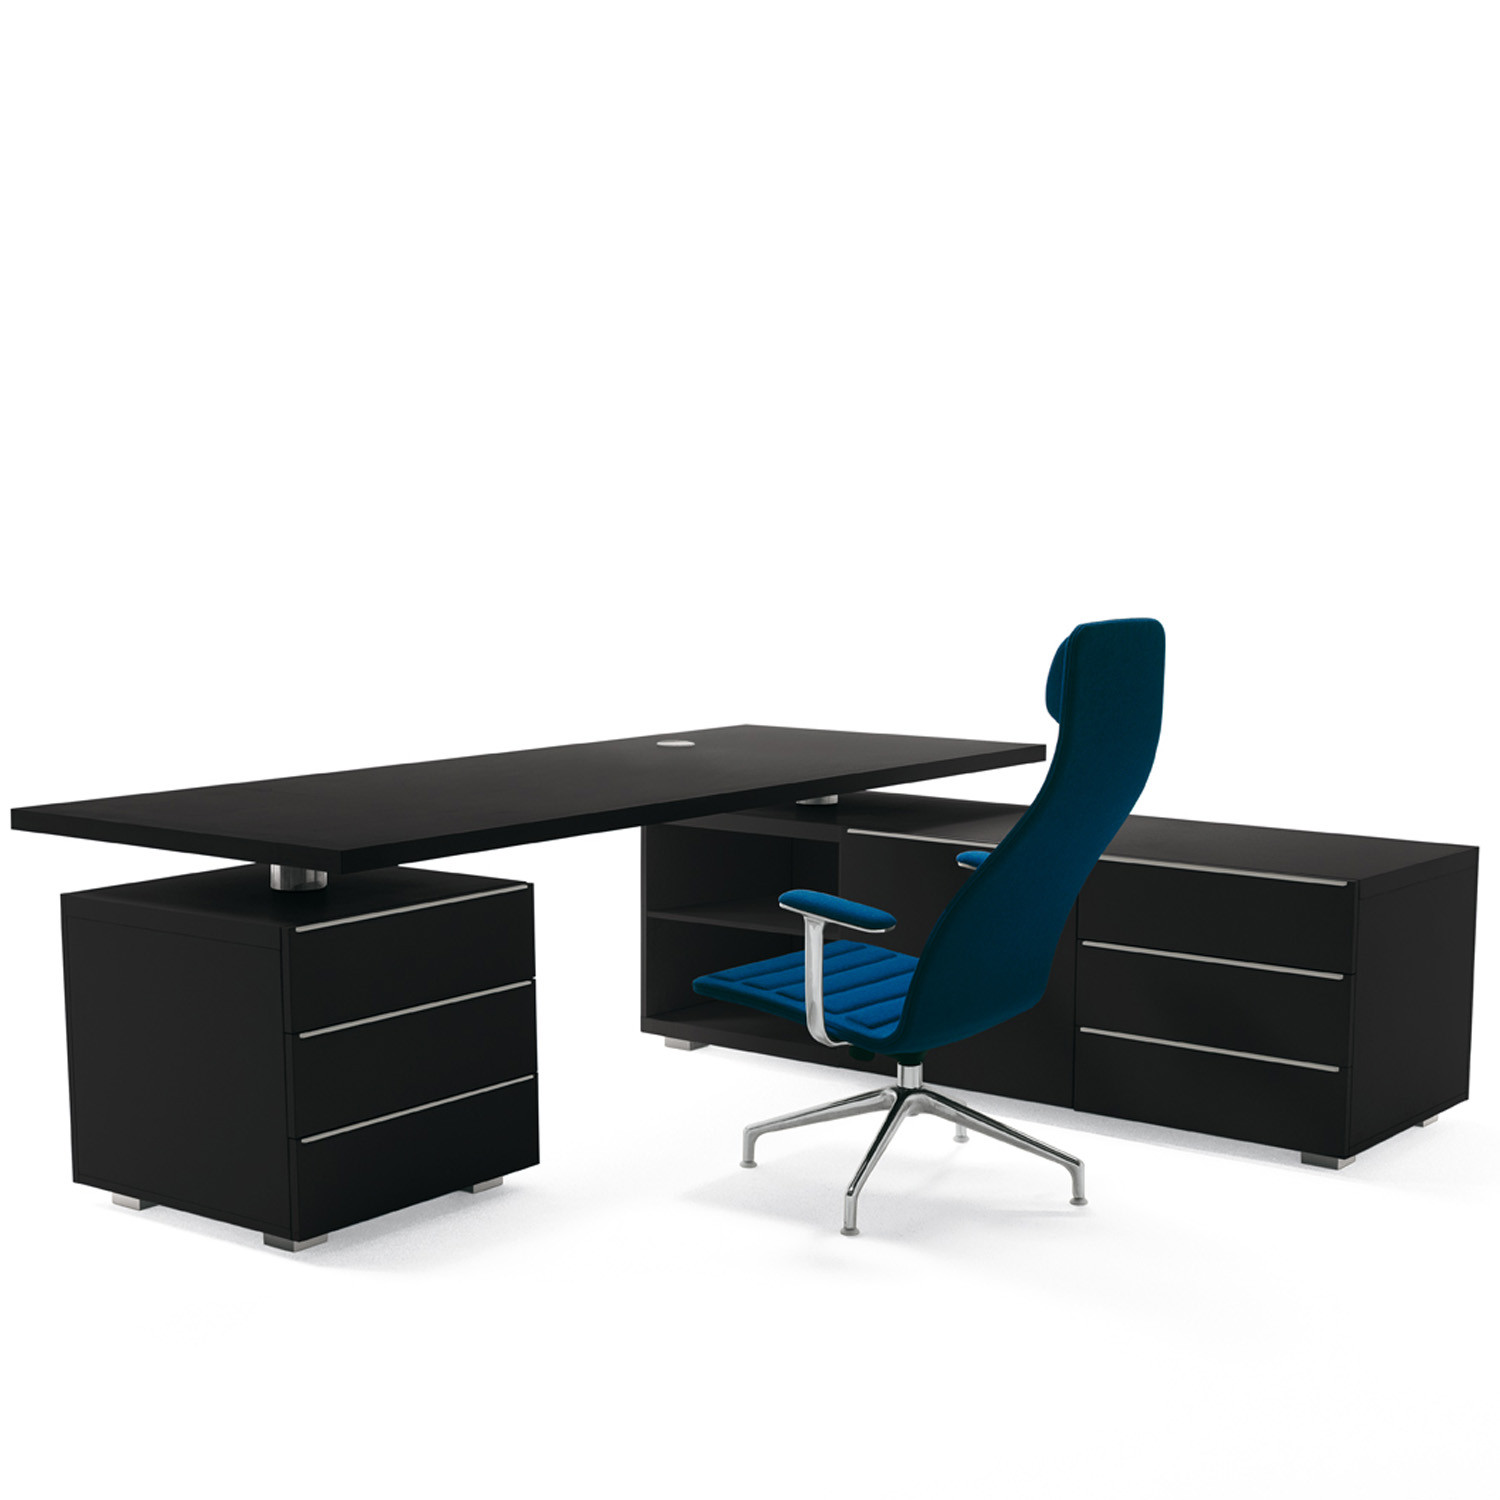 Senior Executive Desk with Return Cabinet